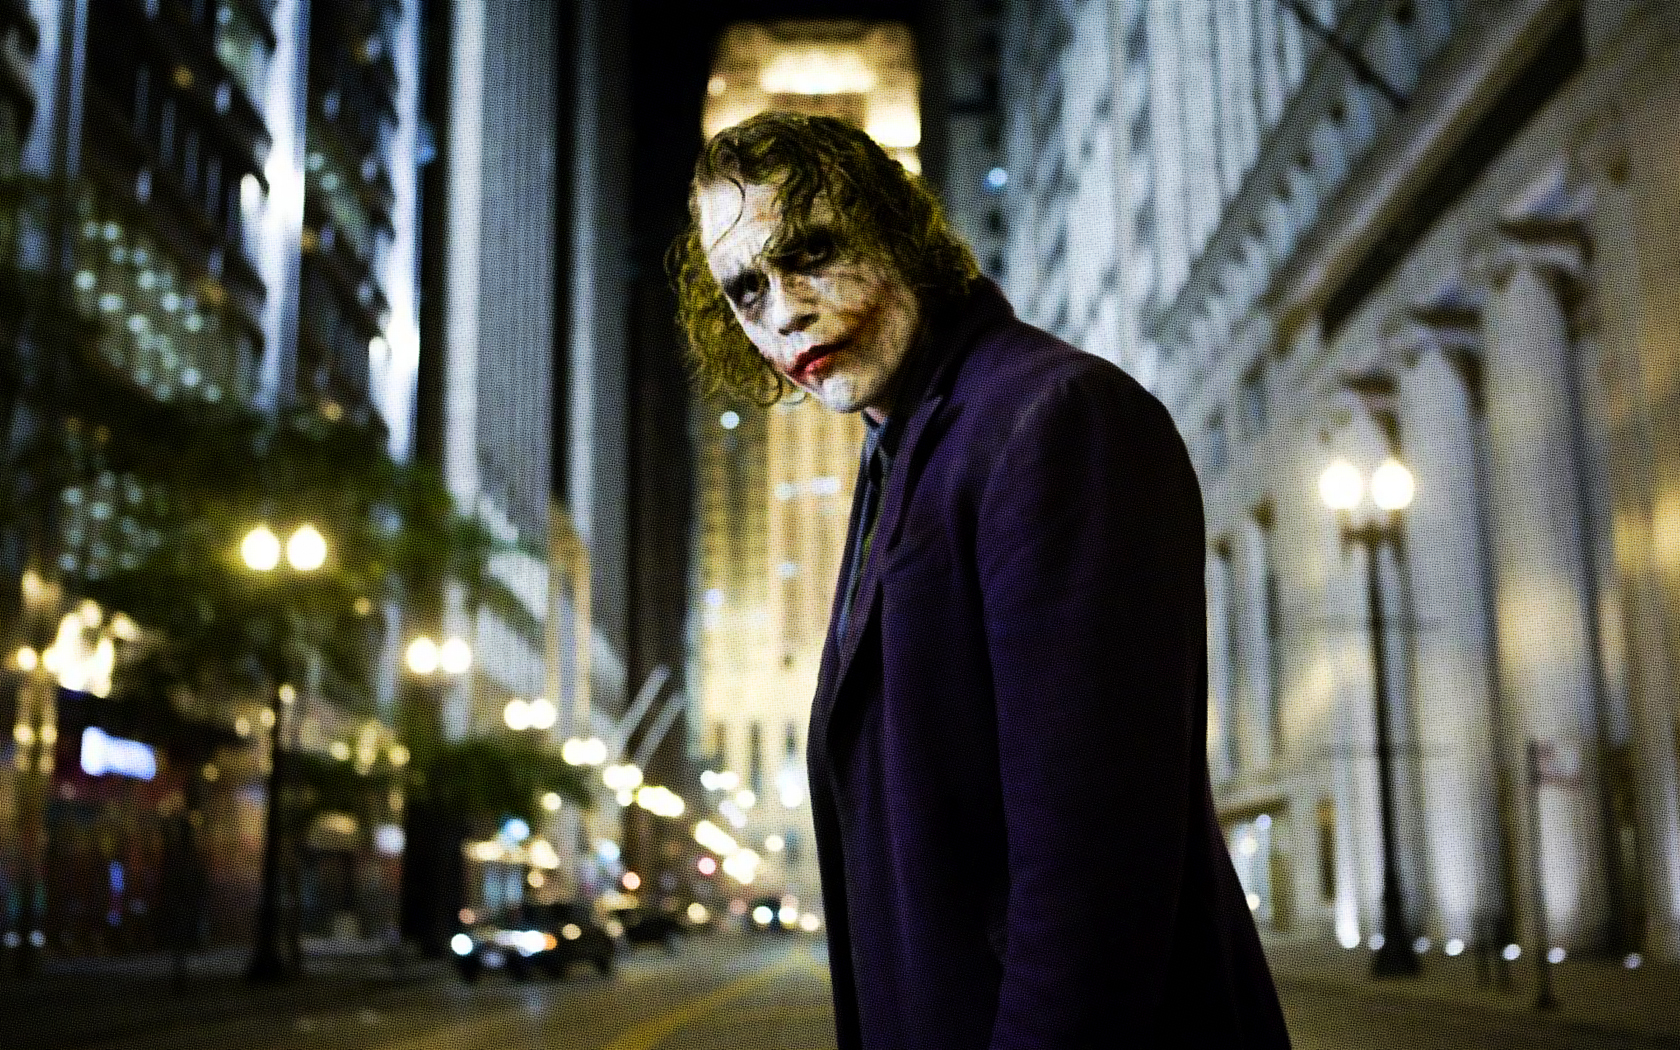 Heath ledger the dark knight the joker wallpaper HQ WALLPAPER 1680x1050